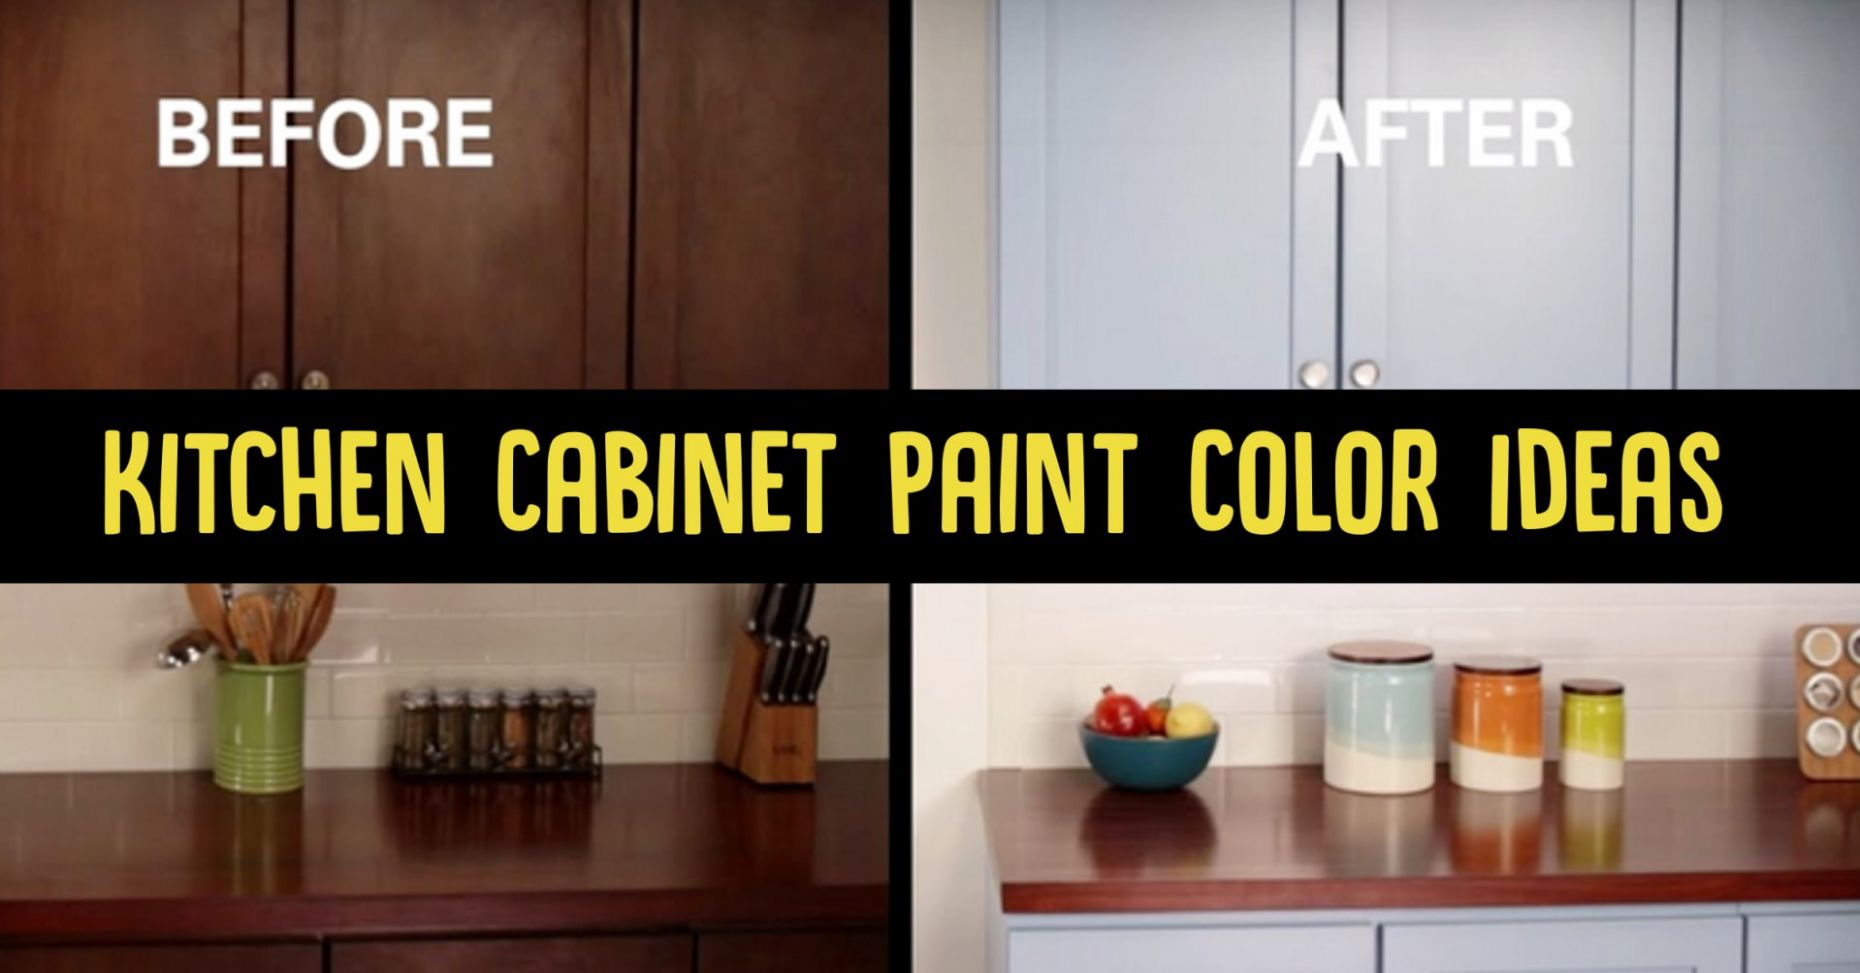 Painting Kitchen Cabinets: Refresh Your Outdated Kitchen With ..